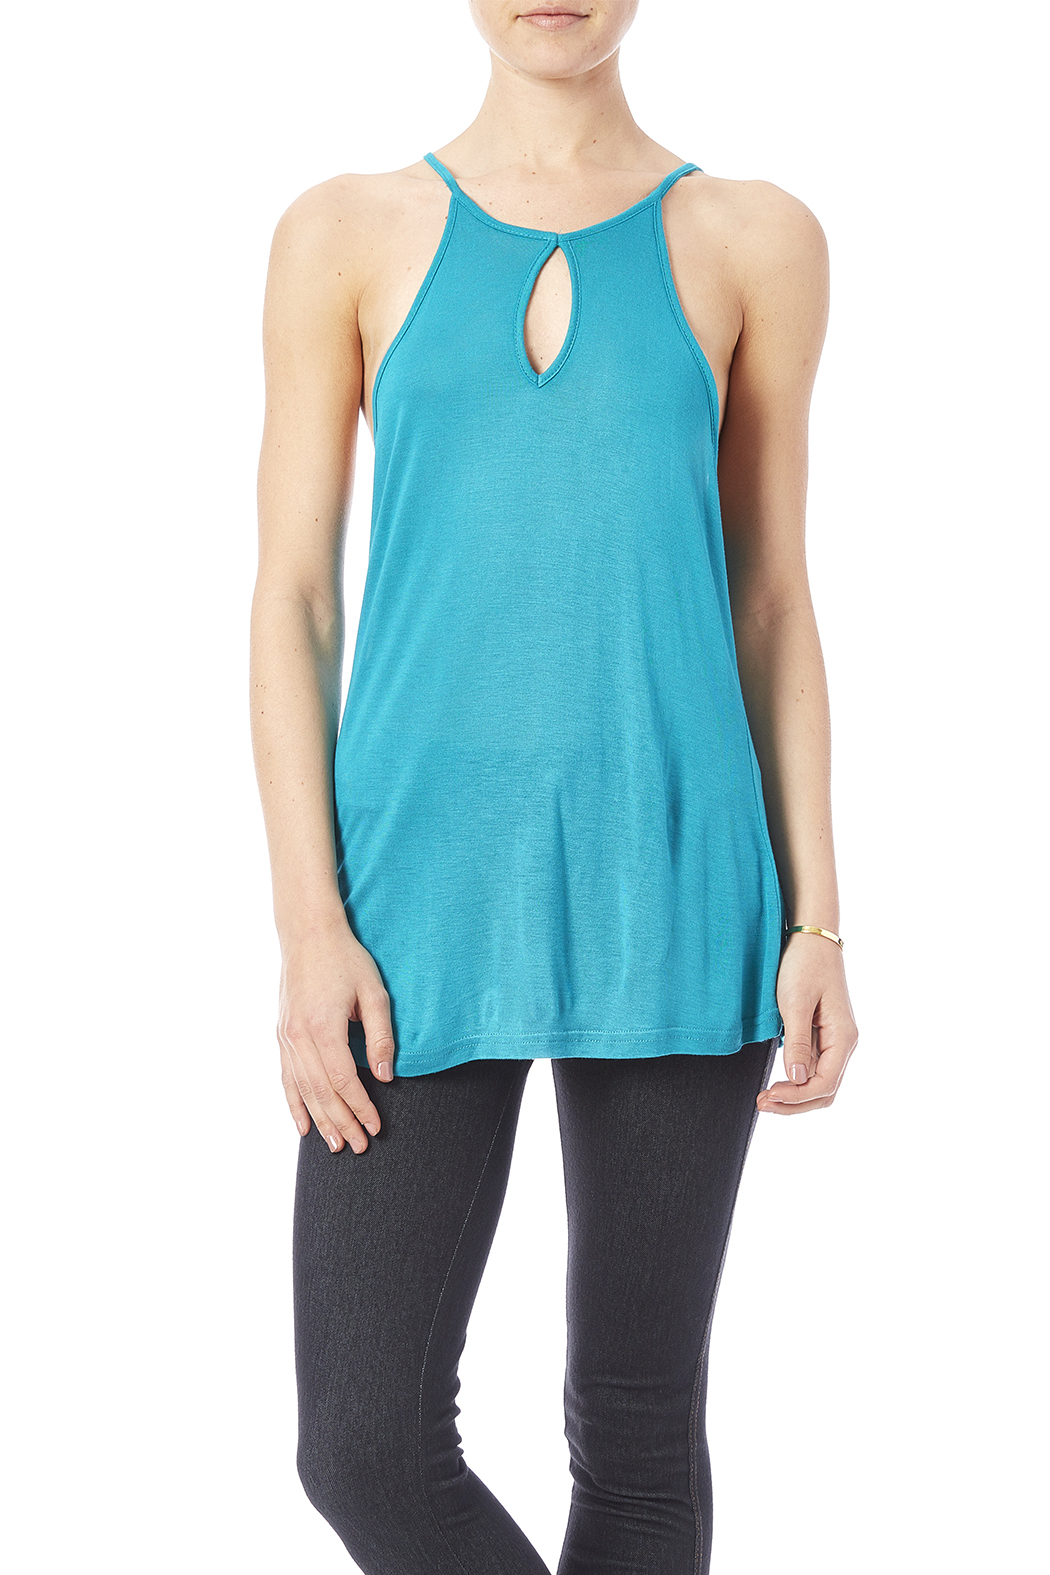 Daisy's Fashions Bamboo Tank - Side Cropped Image